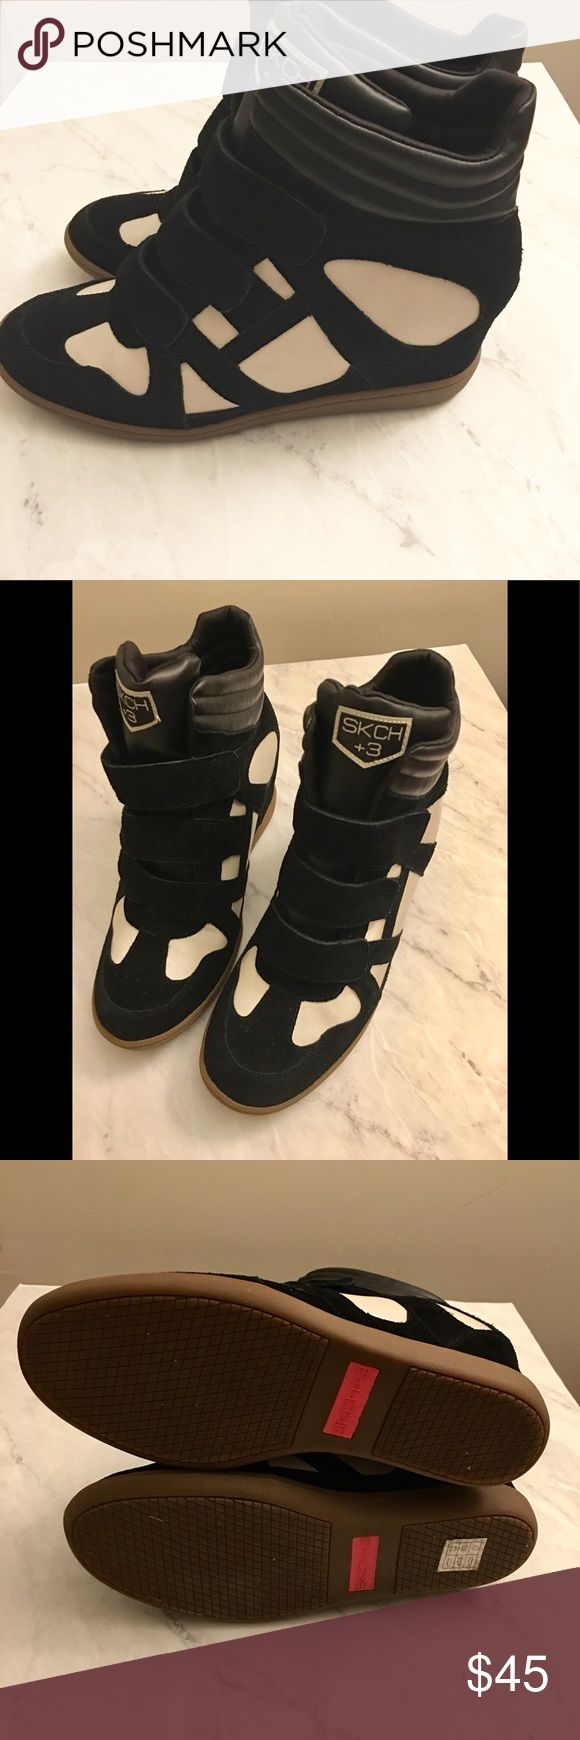 Skechers Wedge Sneakers Black and Tan-colored Wedge sneakers. Very comfortable. Worn once but for some reason felt a bit big so I never wore them again. There are 3 velcro straps across the top. Pretty much like new. Skechers Shoes Sneakers